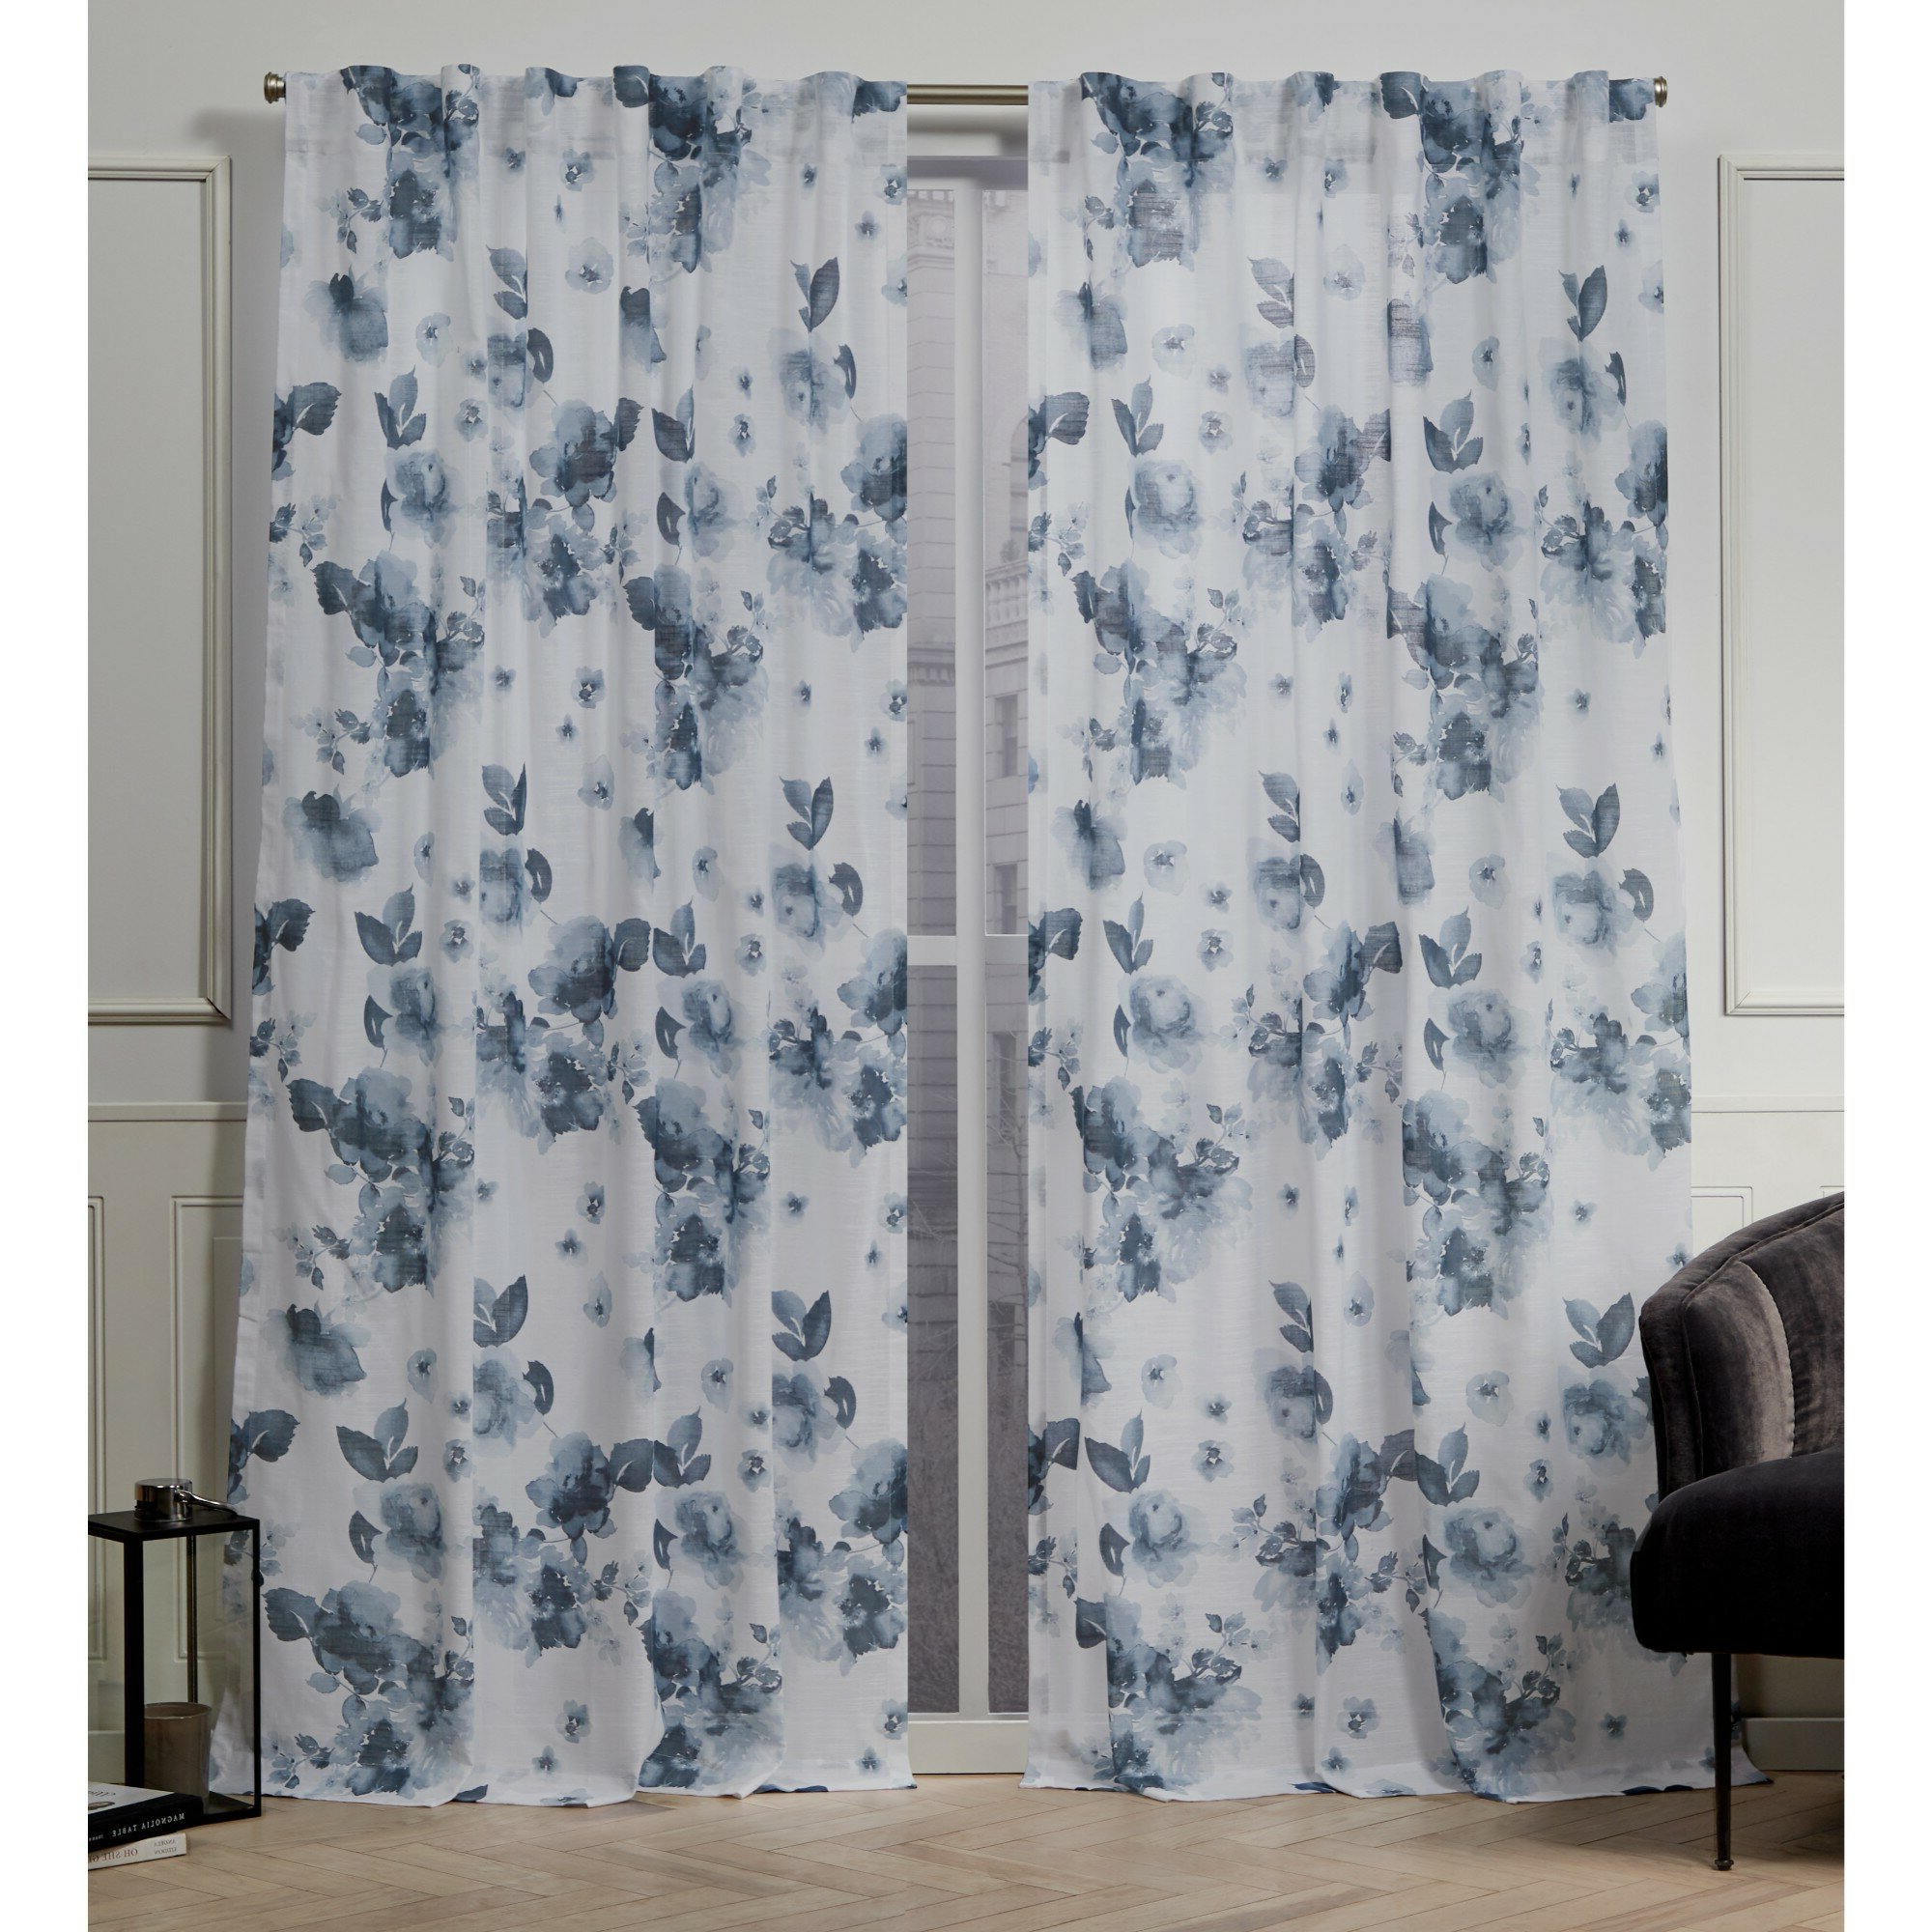 Famous Nicole Miller Kristy Floral Semi Sheer Tab Top Curtain With Vina Sheer Bird Single Curtain Panels (View 17 of 20)